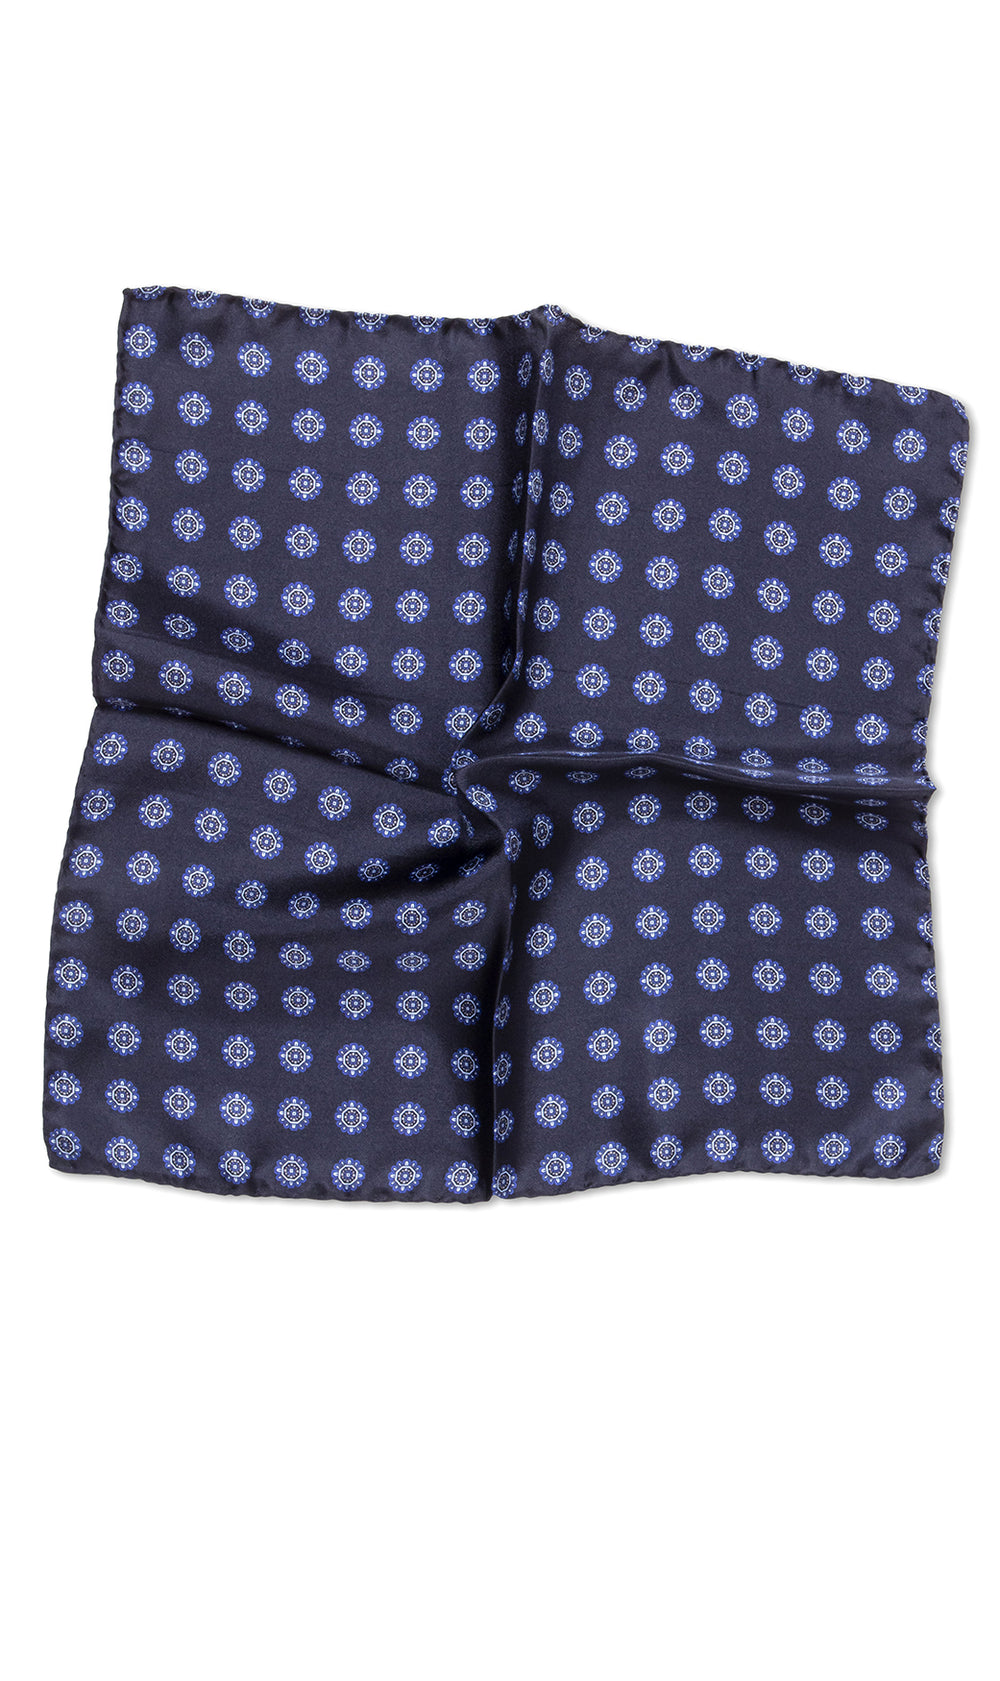 Cerrini Navy Cobalt Pocket Square - MCM Studio